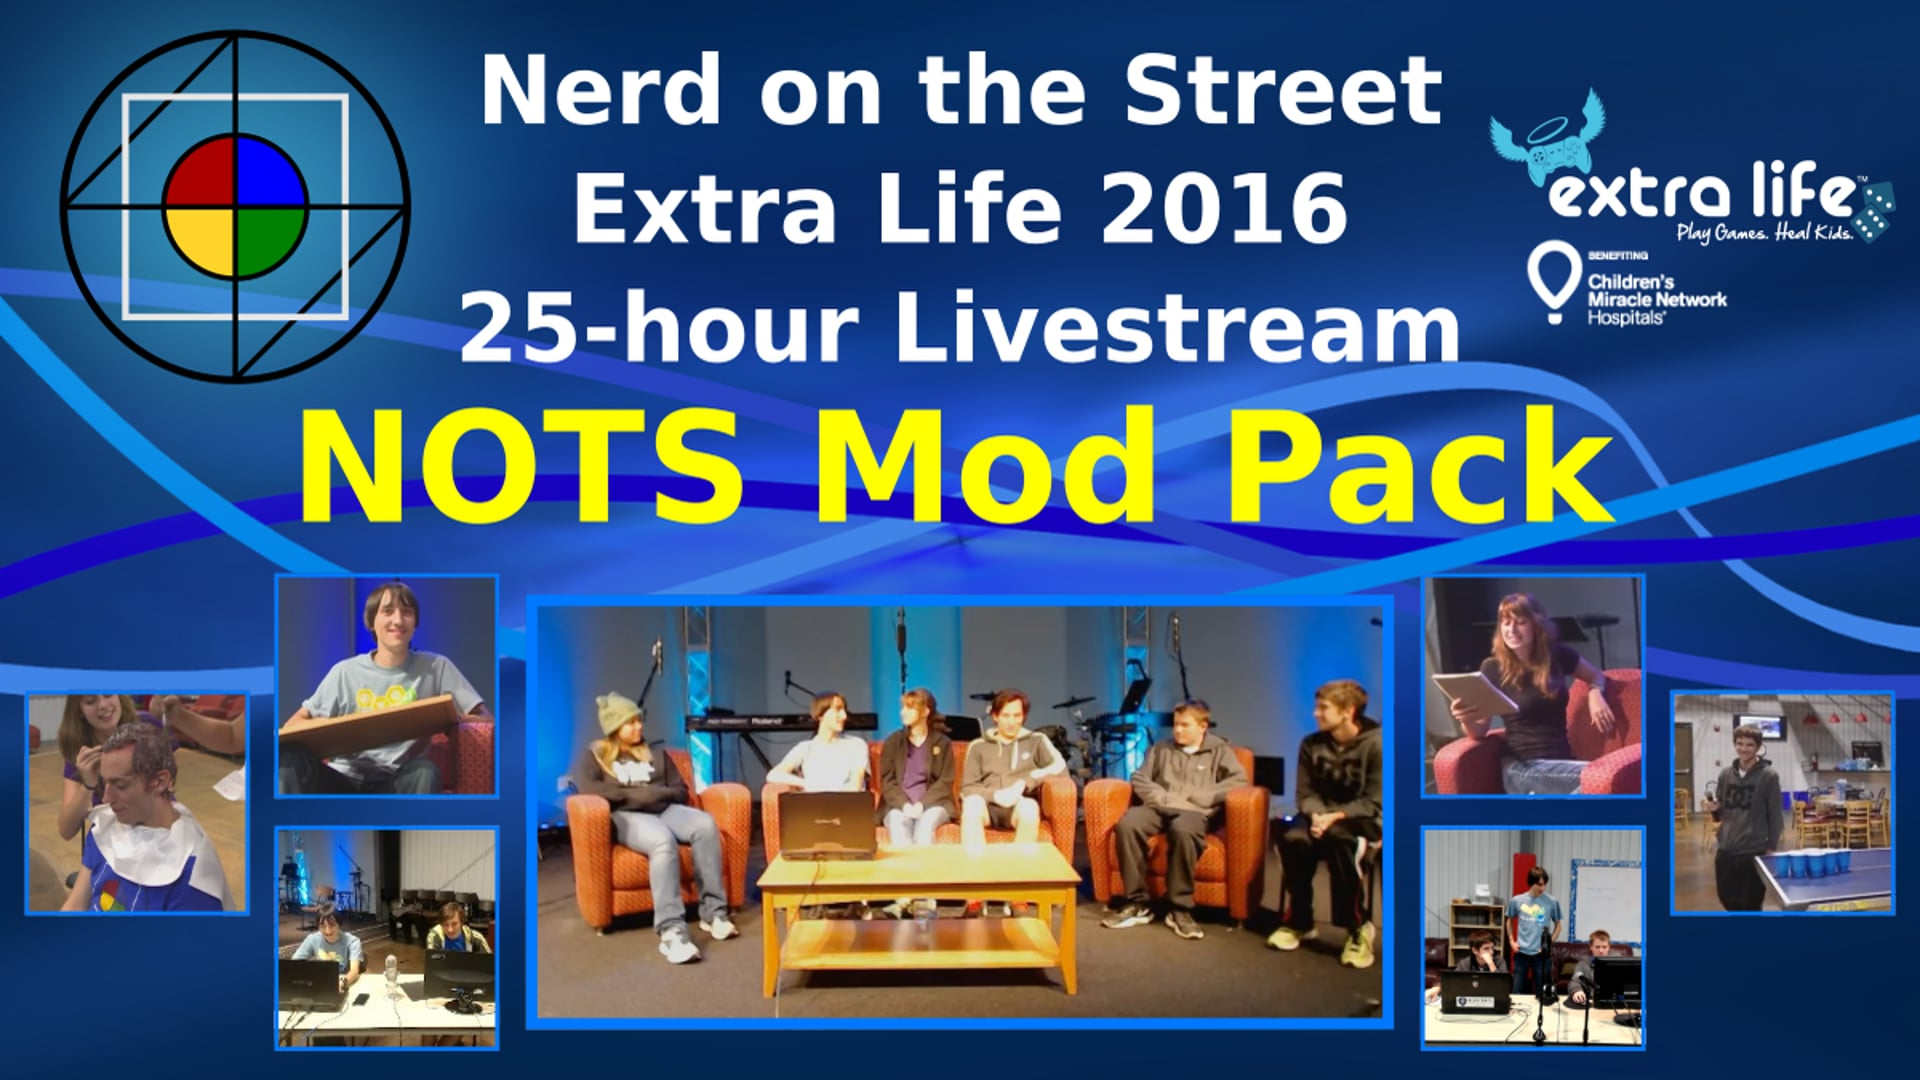 NOTS Mod Pack - Extra Life 2016